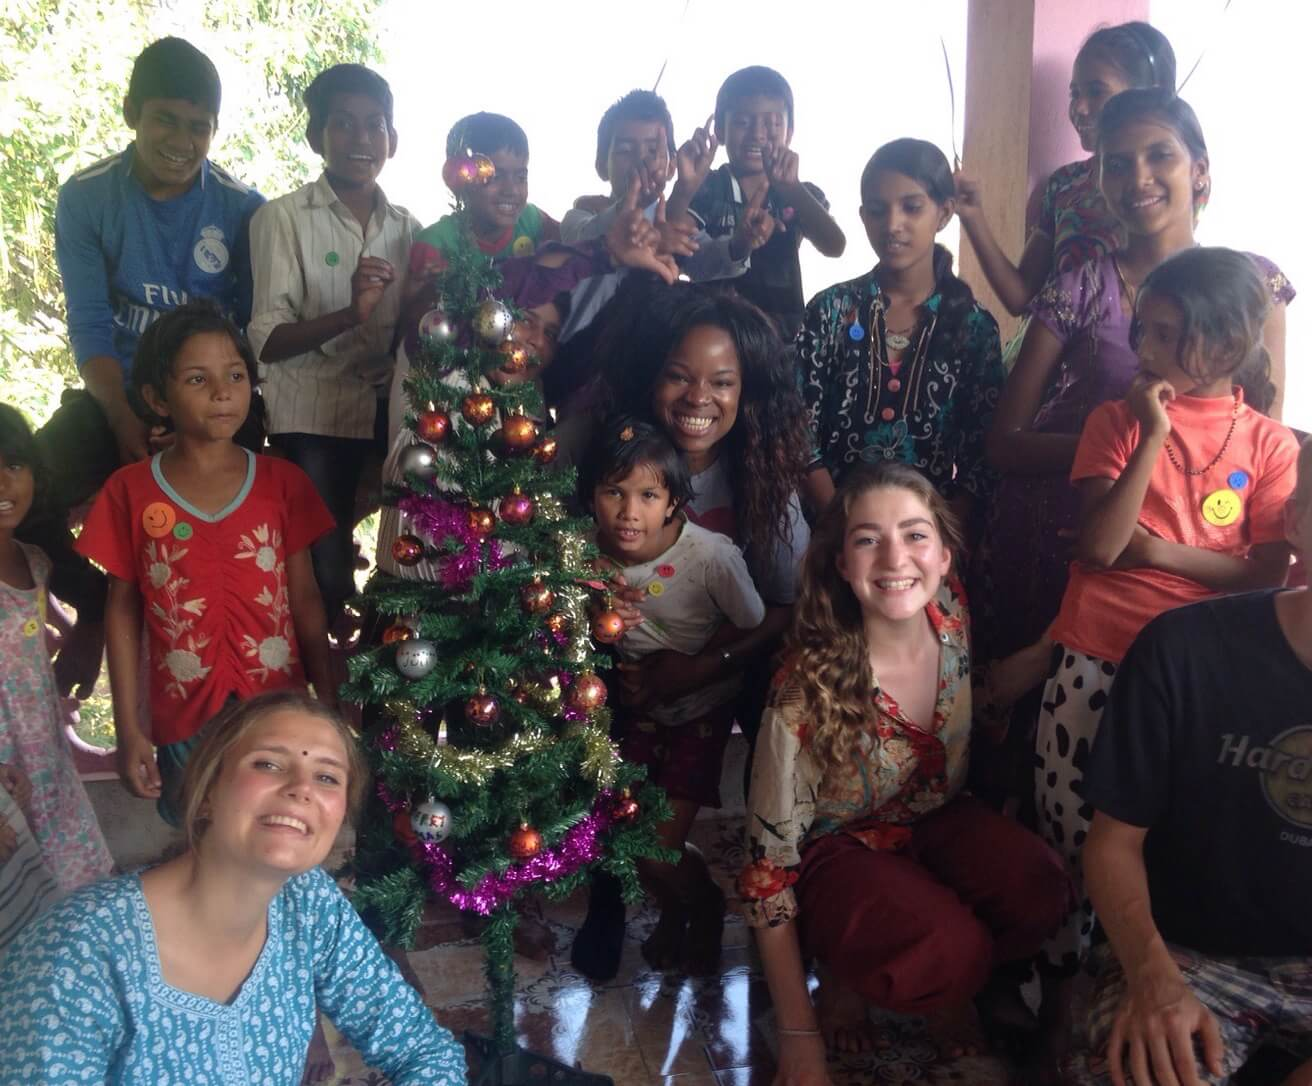 Toska in India for Christmas (center wit Bird Blouse)